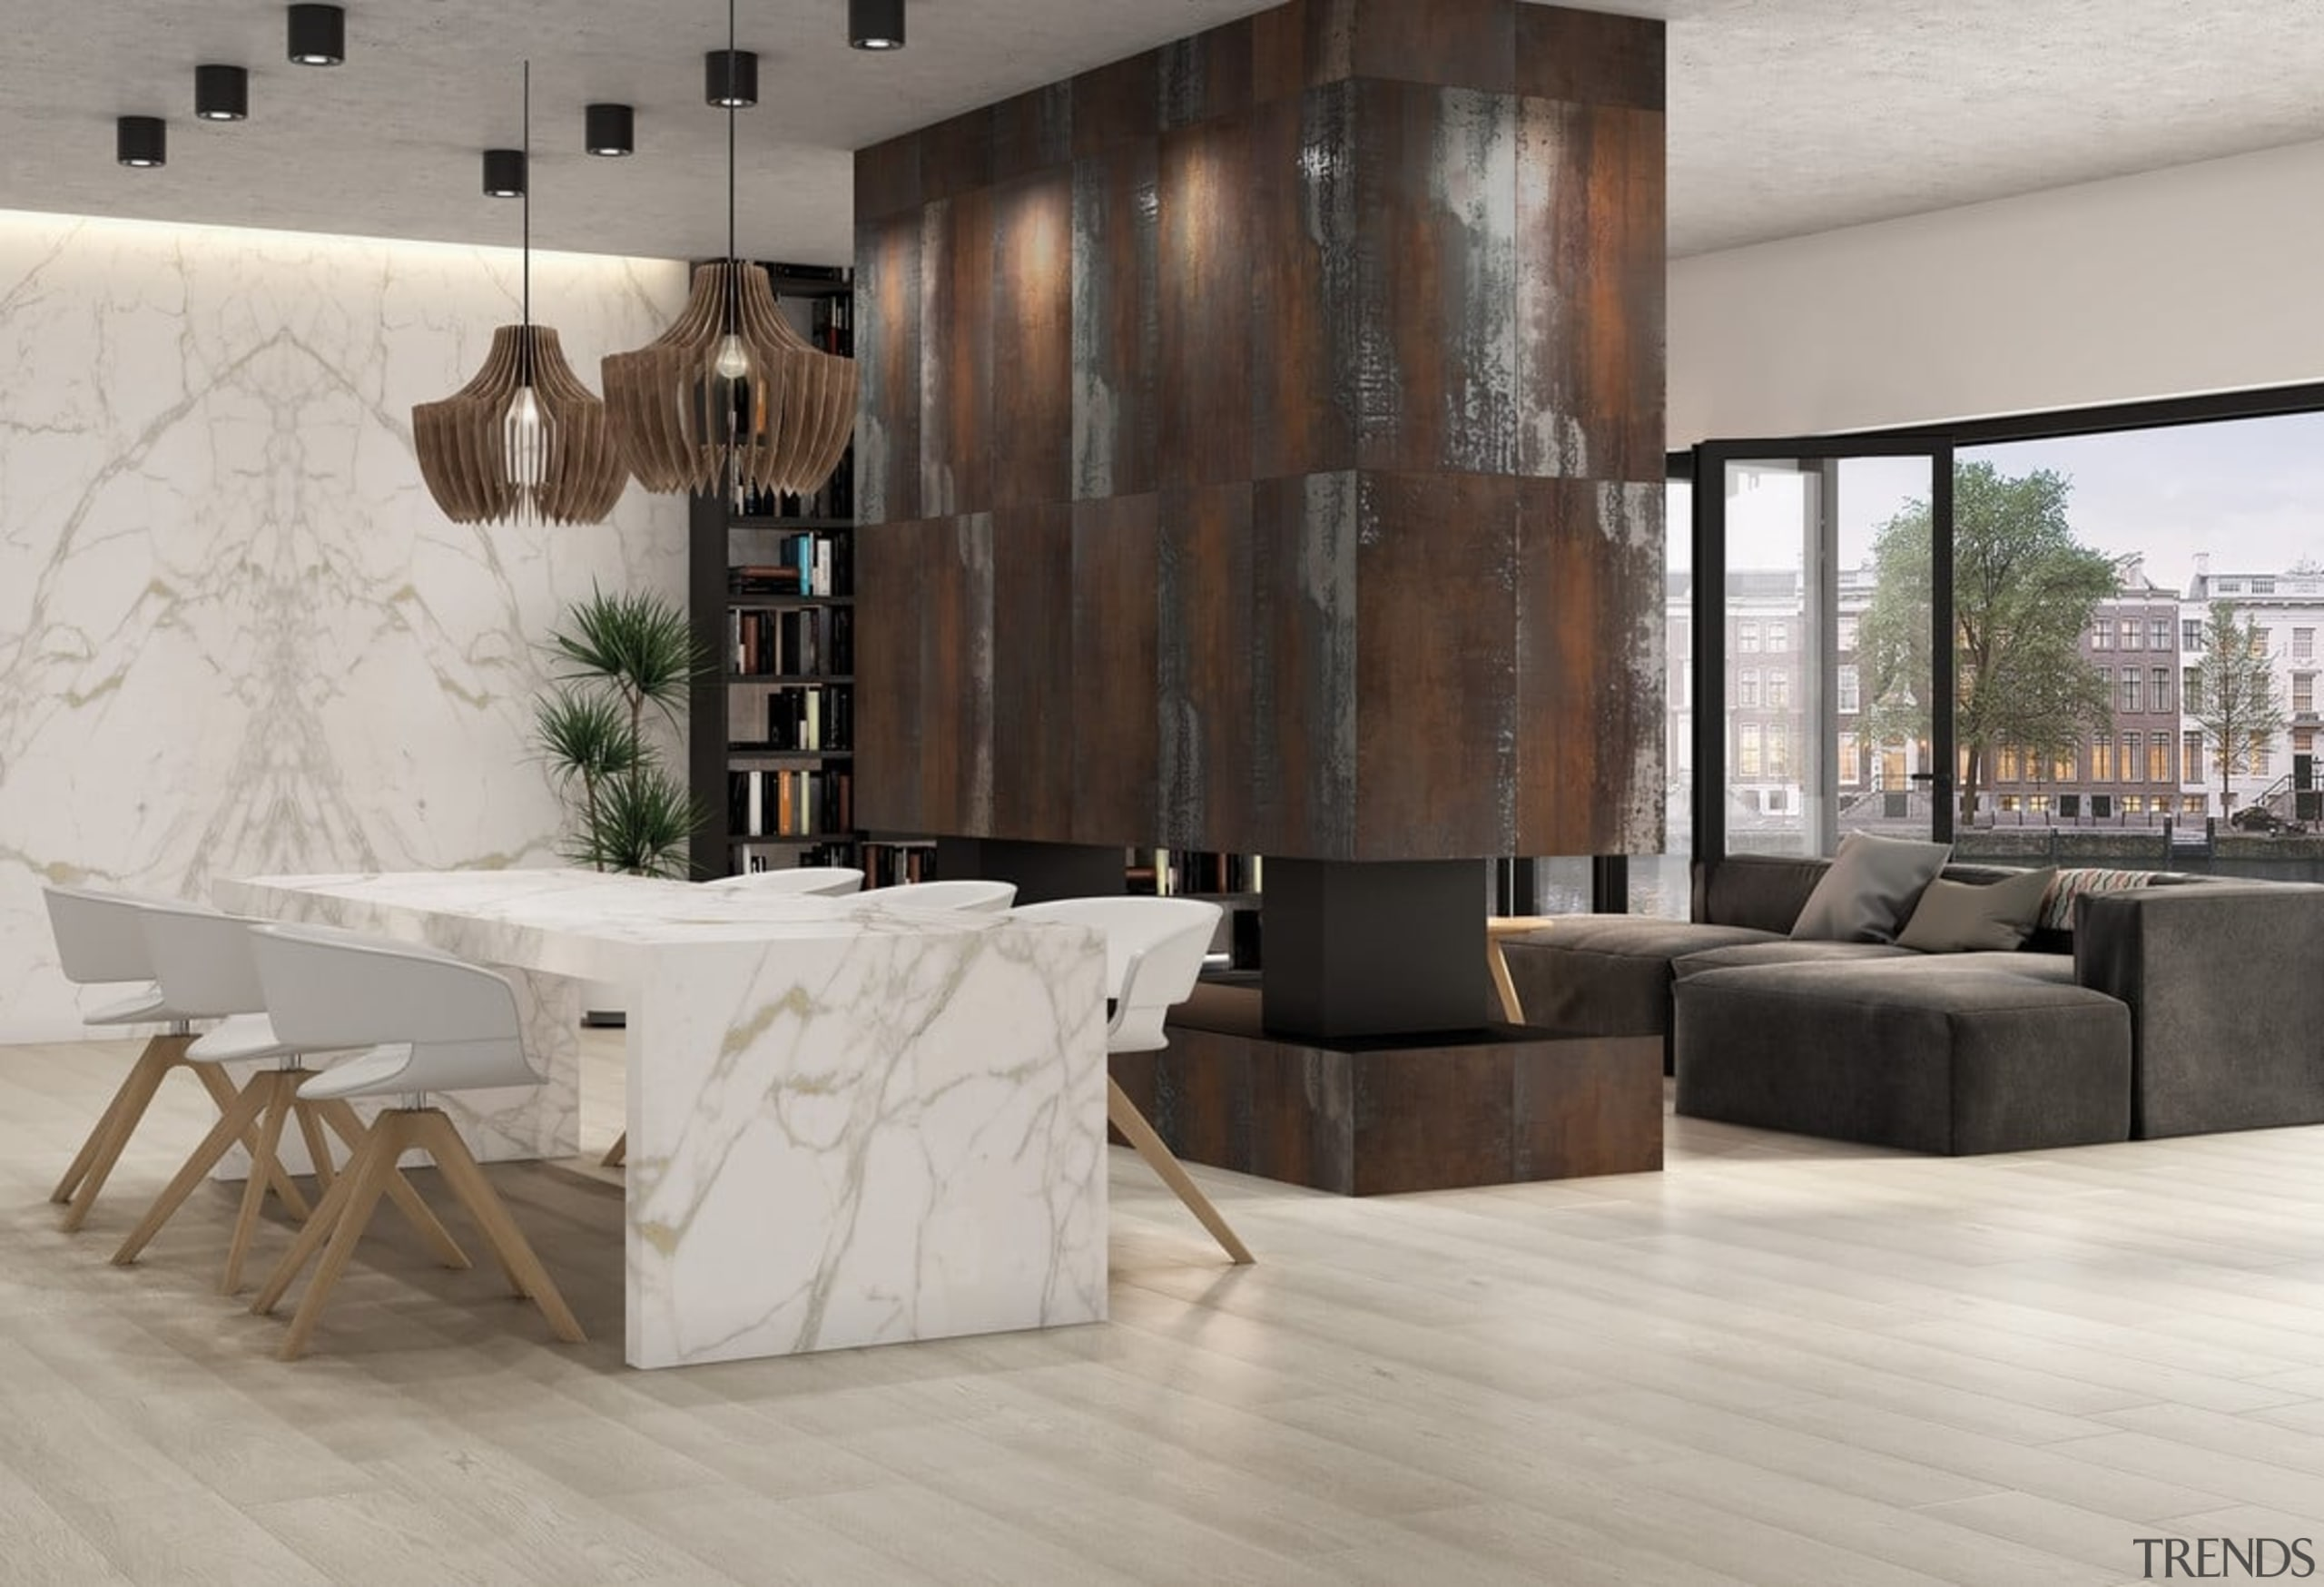 Universal Granite And Marbles Showroom - floor | floor, flooring, furniture, interior design, laminate flooring, living room, table, tile, wall, wood, wood flooring, gray